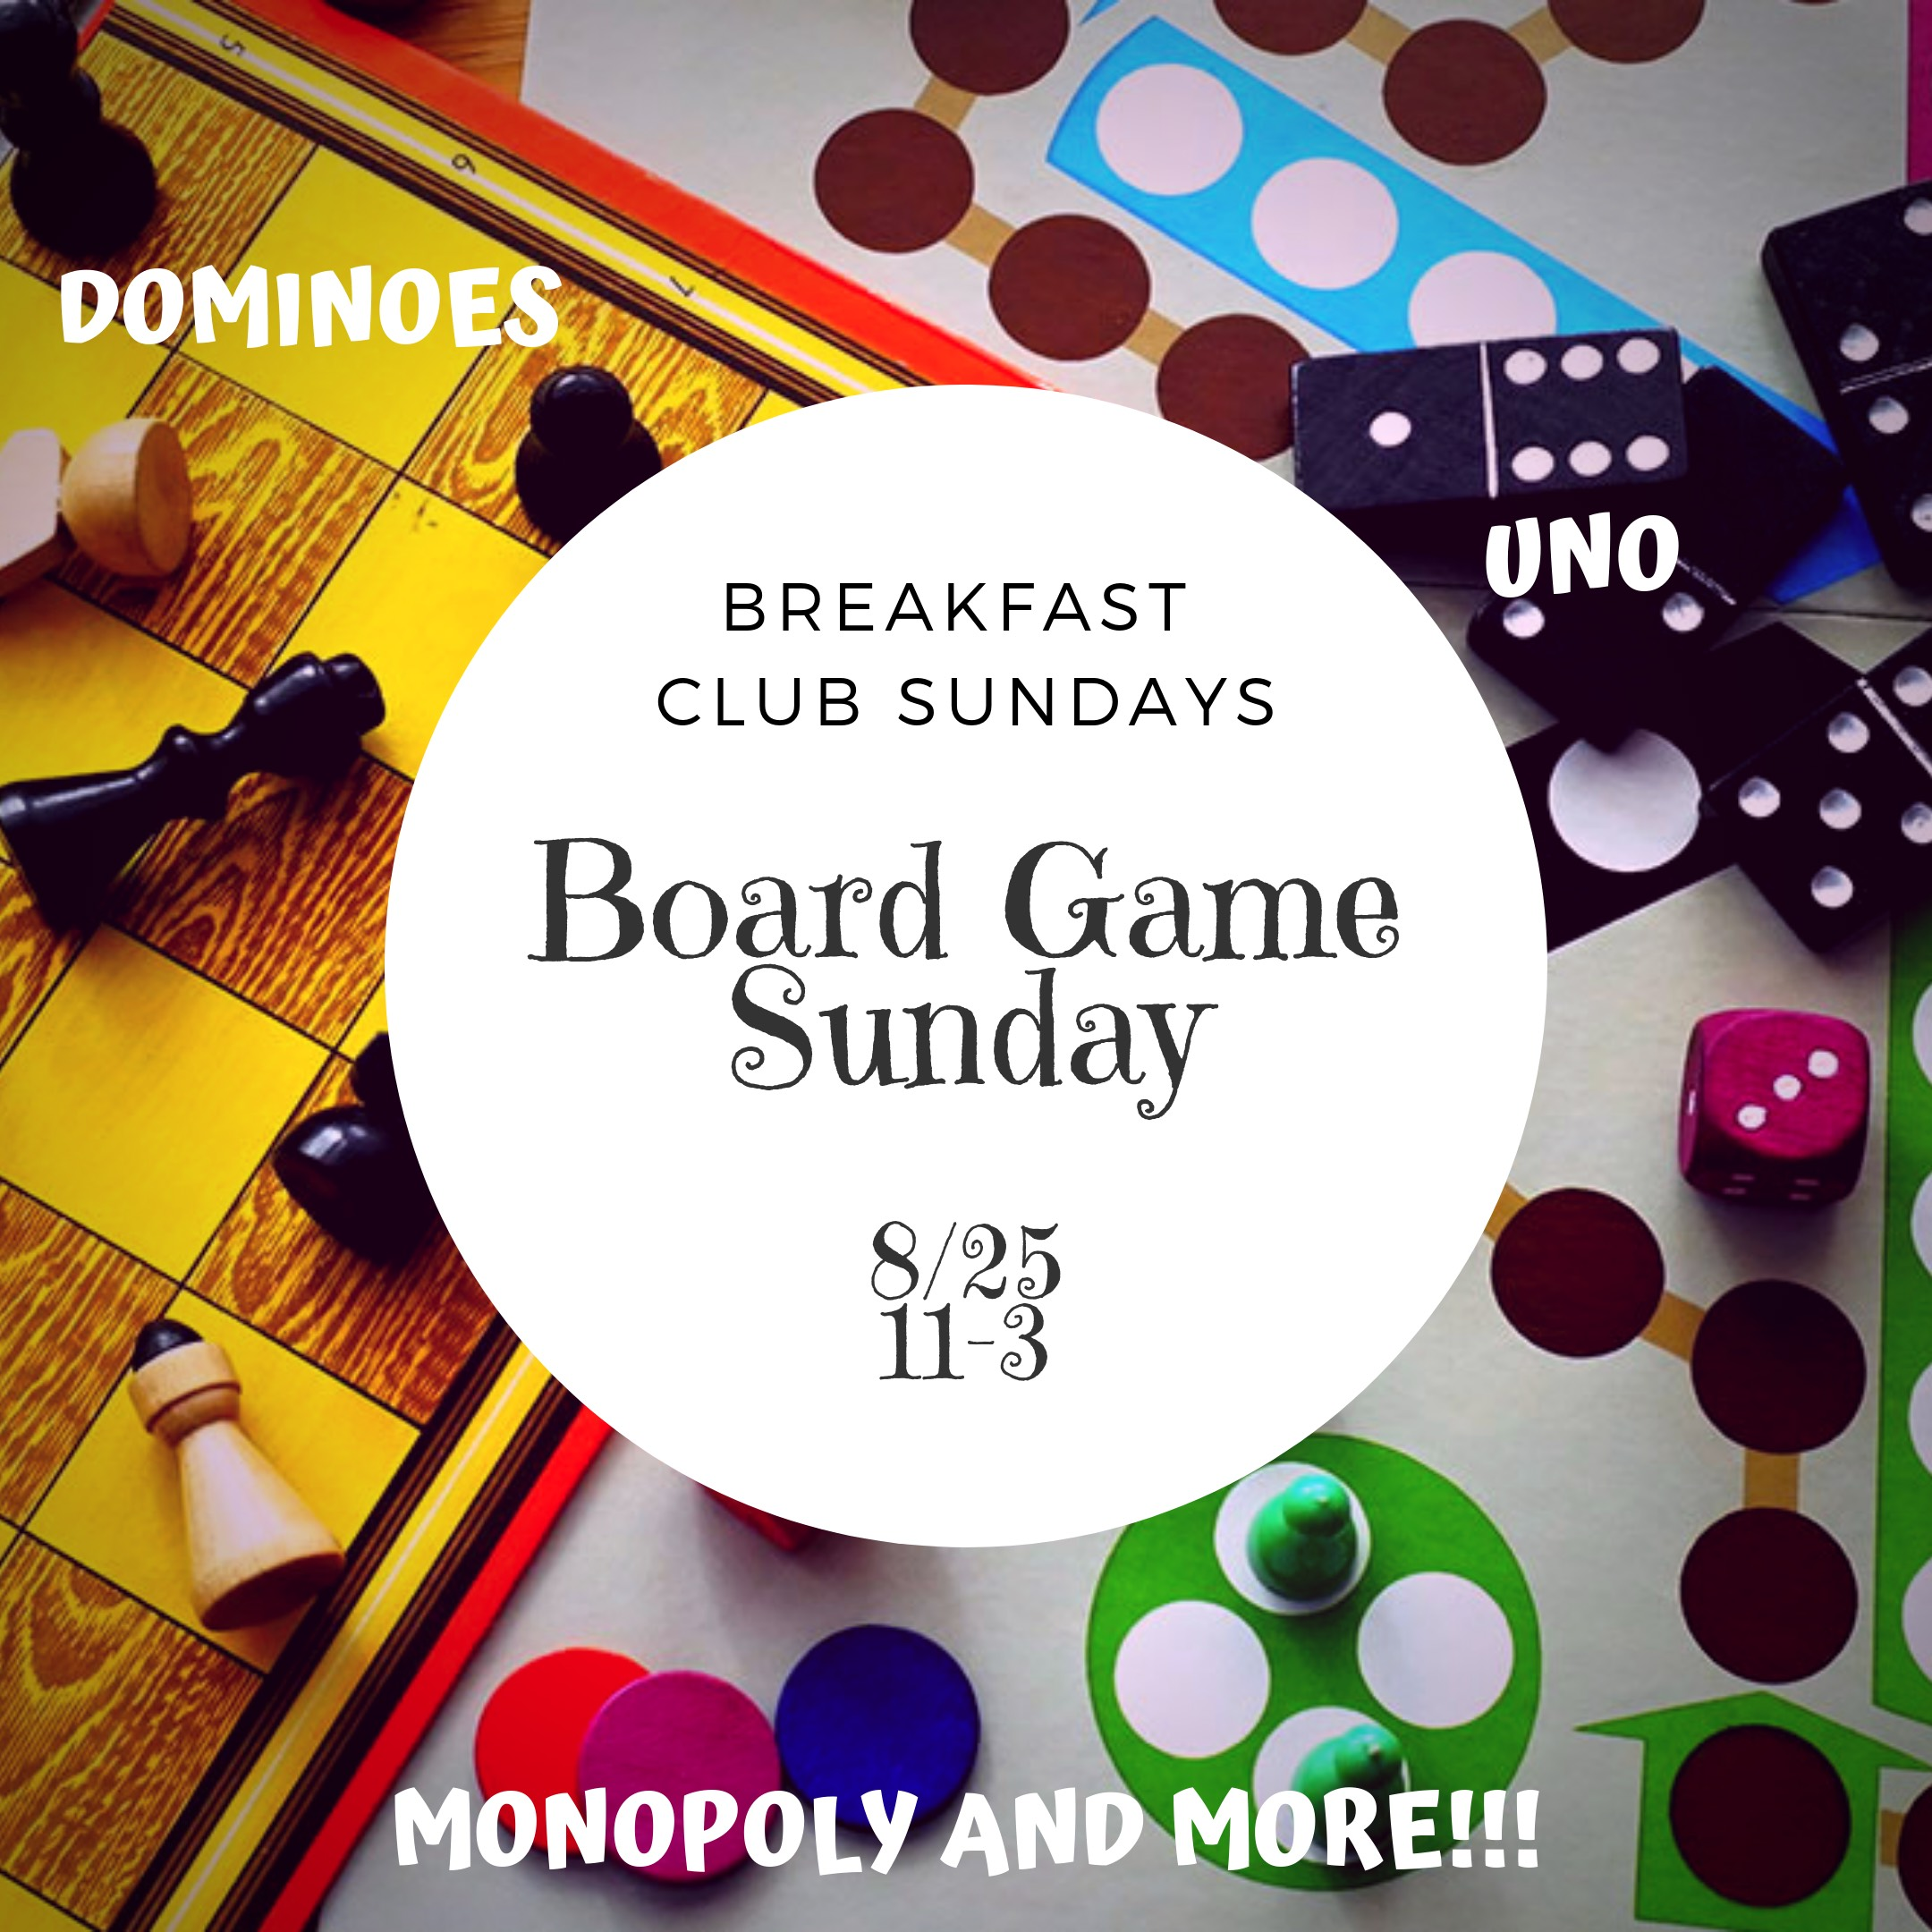 BreakfastClubSundays Board Game Sunday 8/25